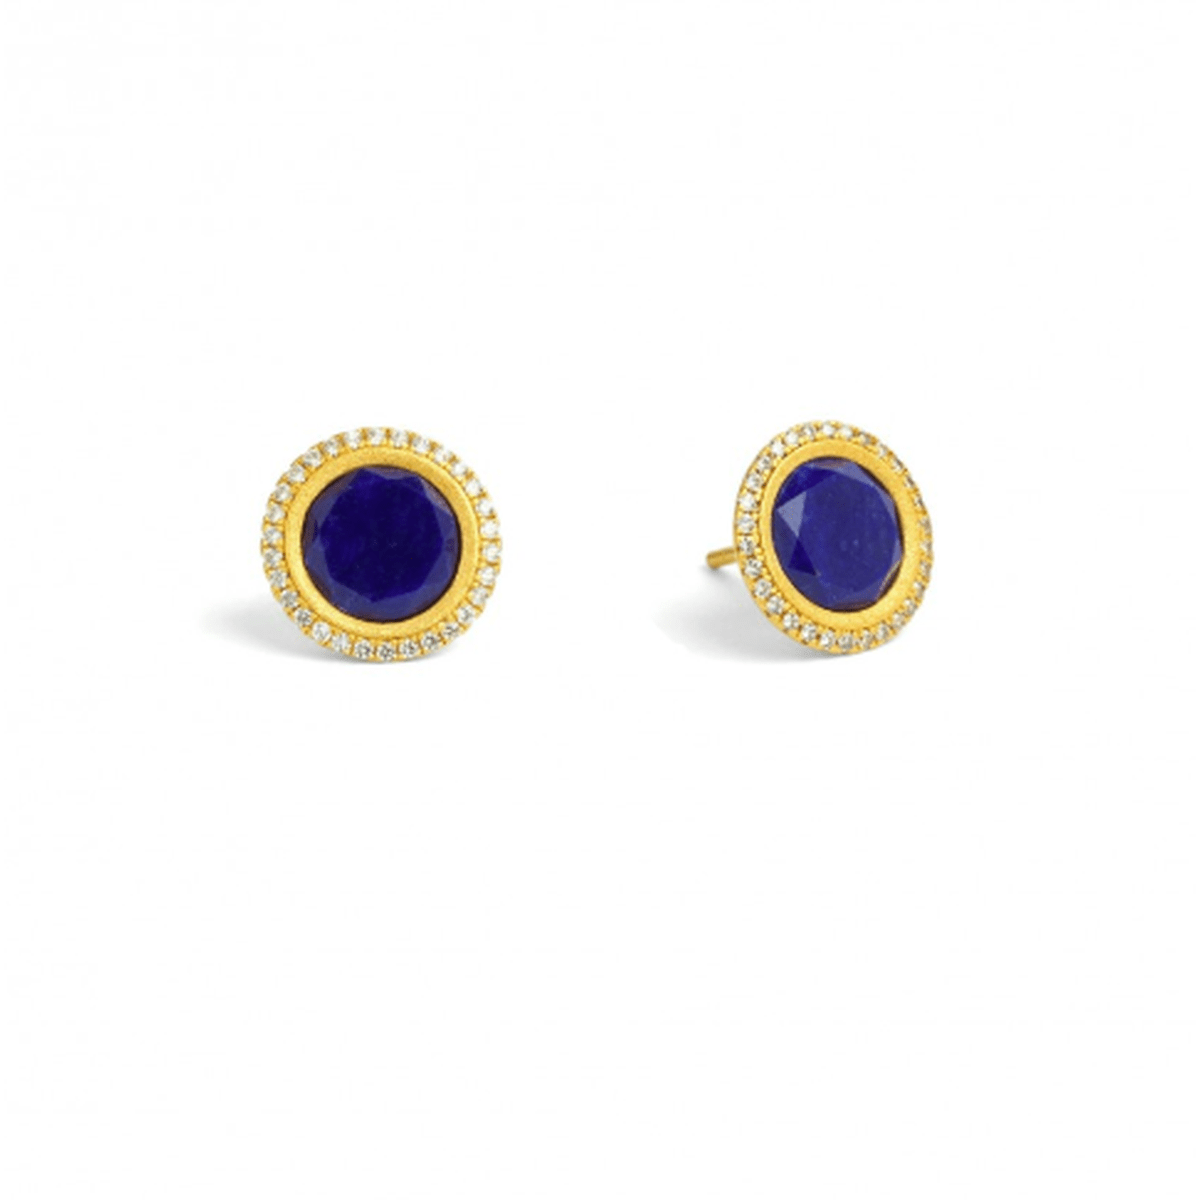 Tisinni Lapislazuli Stud Earrings - 19800236-Bernd Wolf-Renee Taylor Gallery